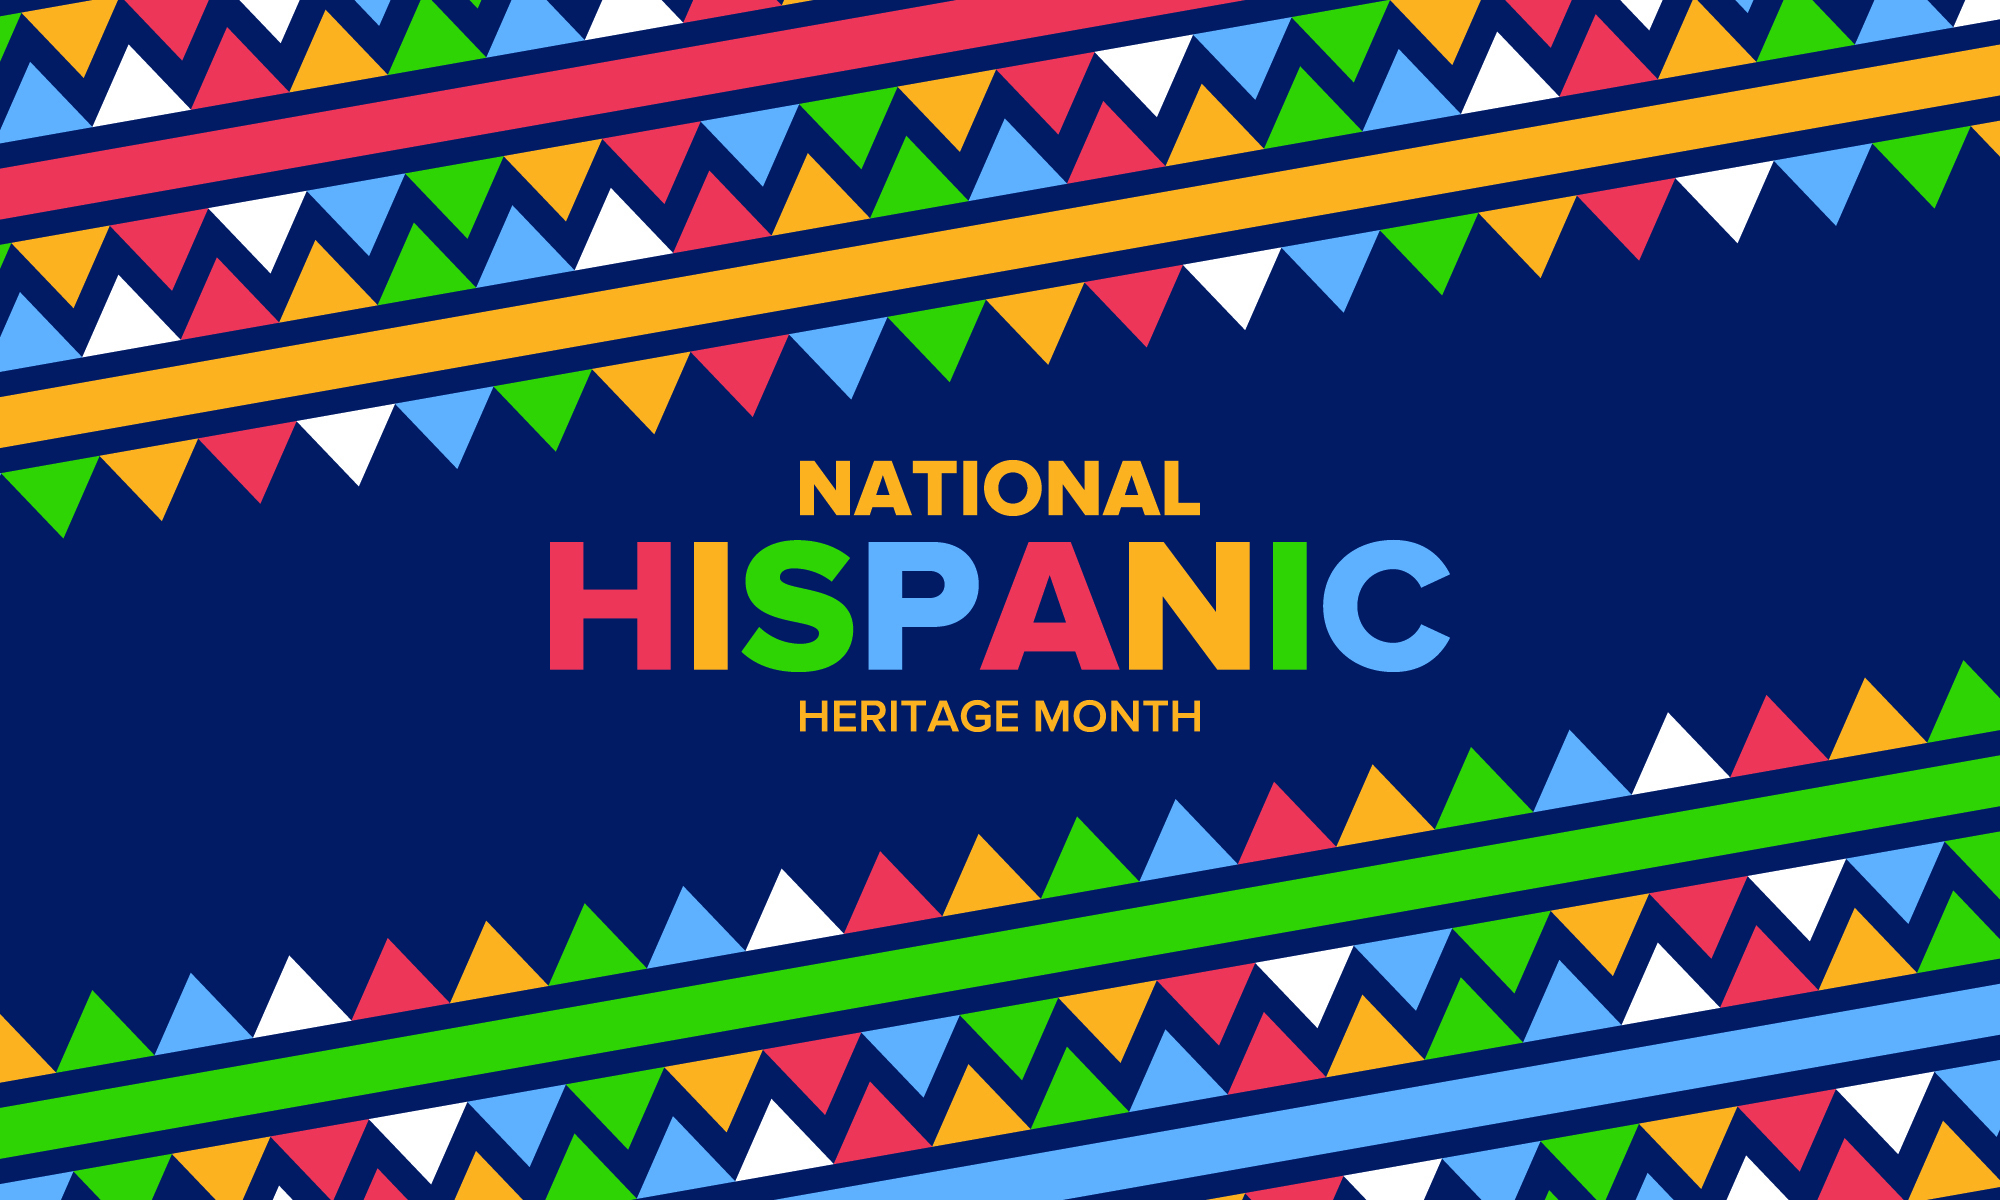 The history and significance of Hispanic Heritage Month - Image 4